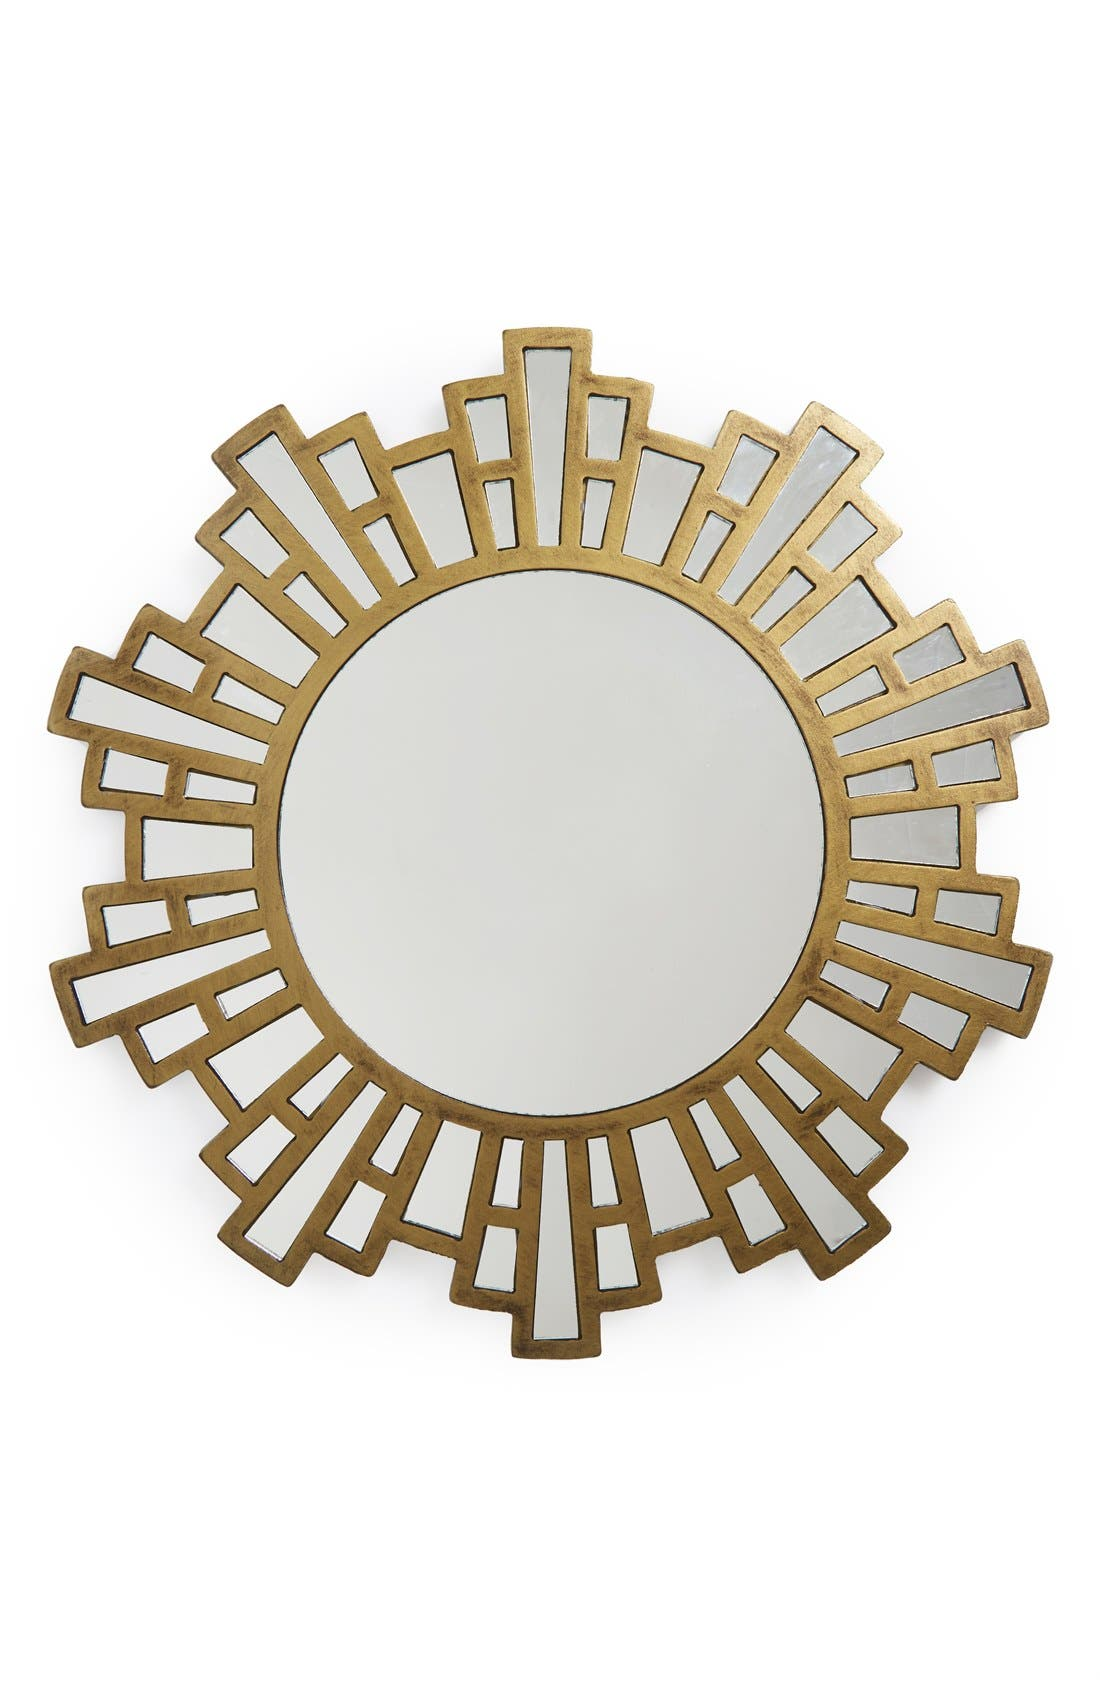 Main Image - Era Home 'Gold Starburst' Mirror